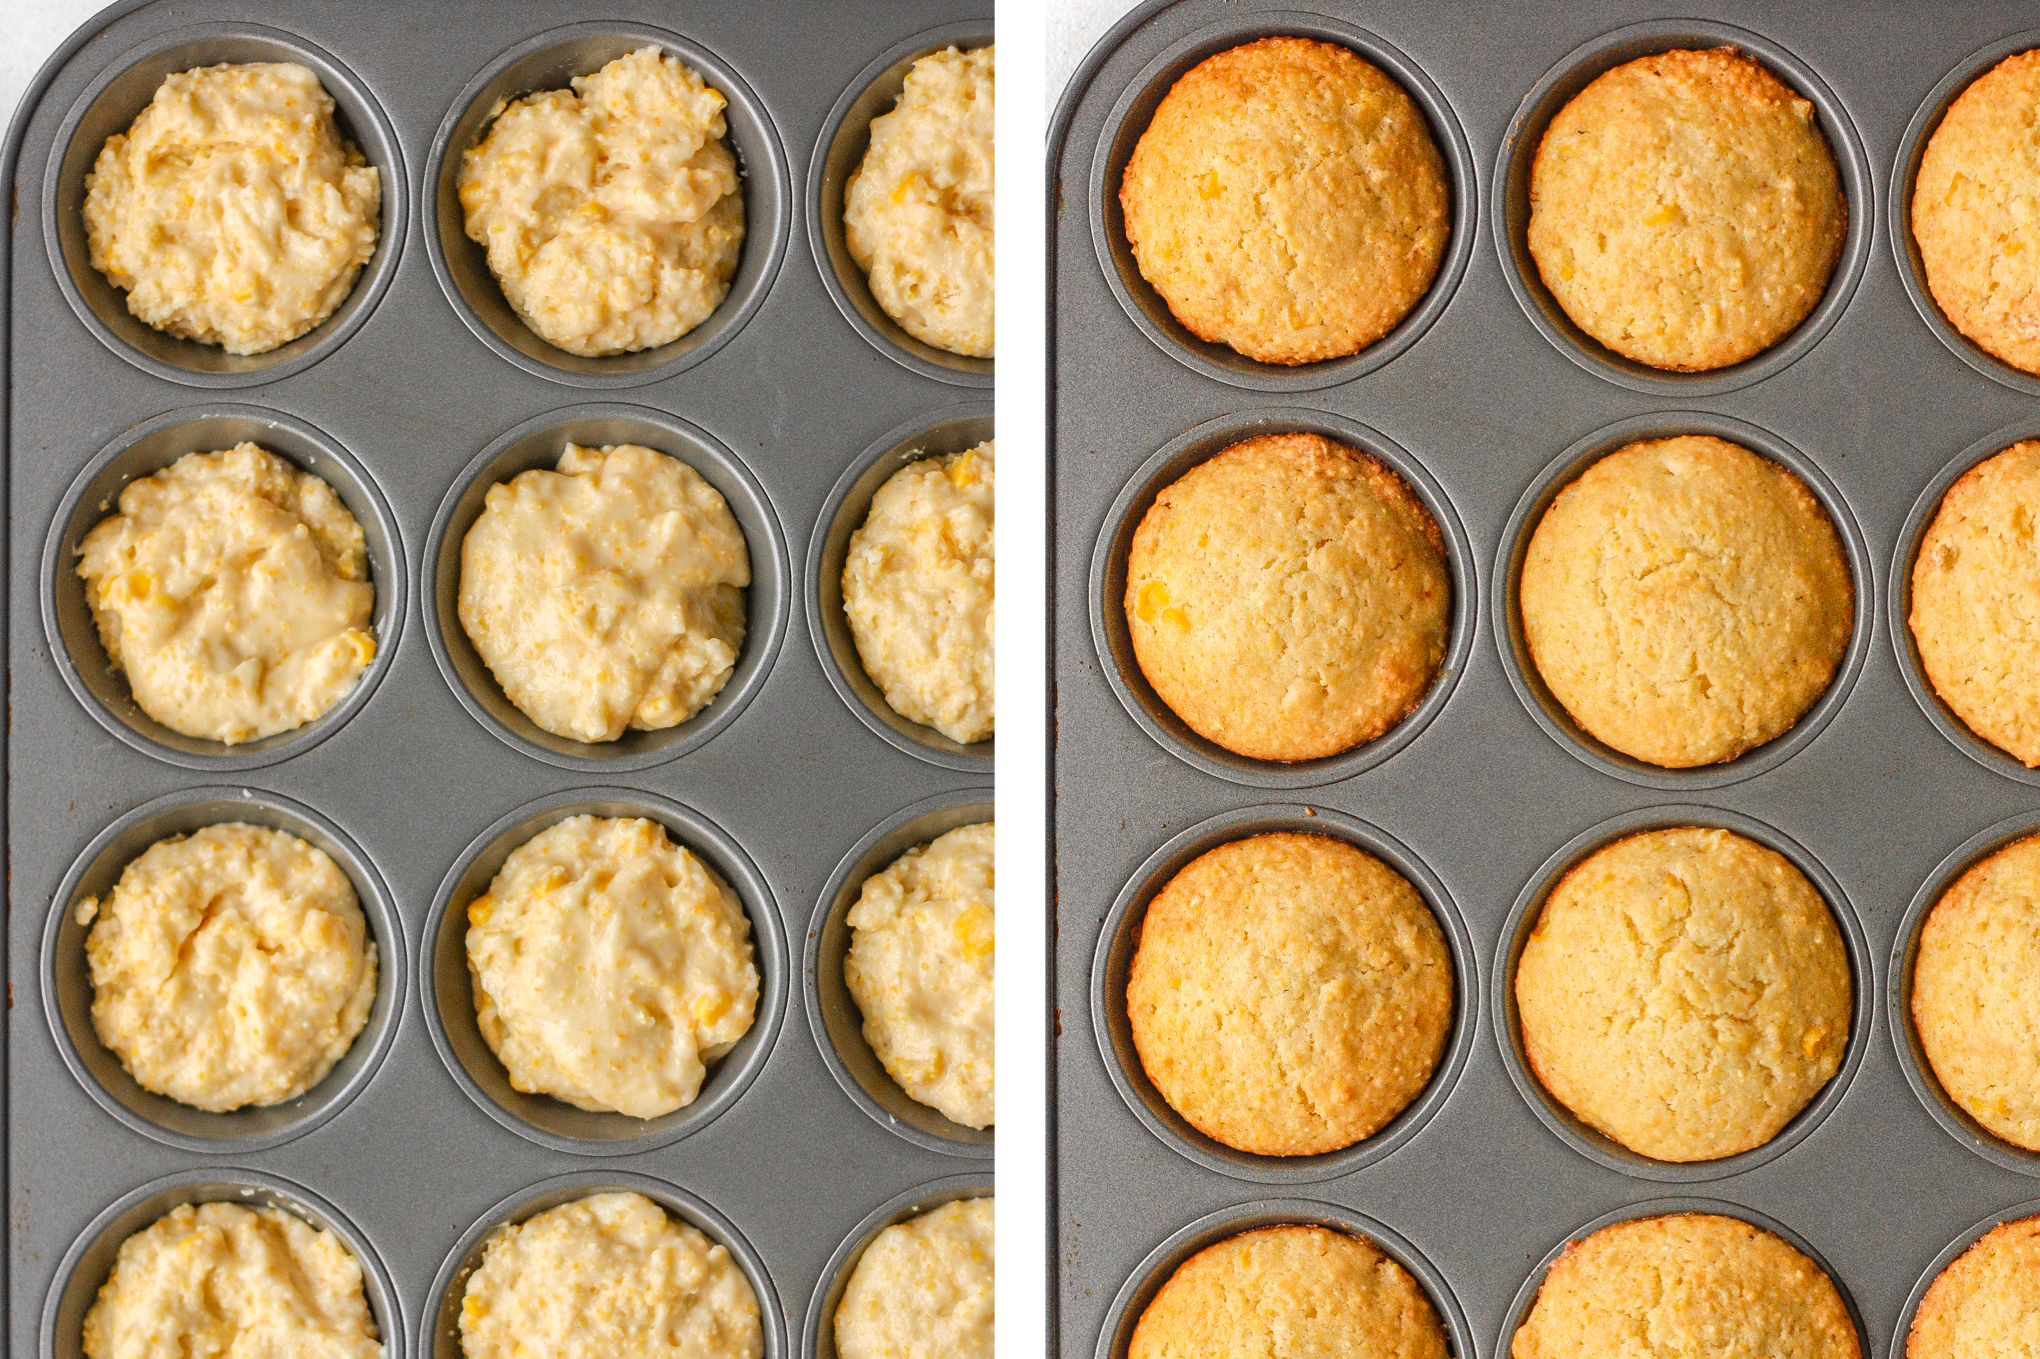 Easy cornbread muffins just made cooking a whole lot easier and tastier! These moist and fluffy muffins are made with cornmeal, cooked corn kernels, and sweetened with honey for a burst of flavor in every bite. | aheadofthyme.com